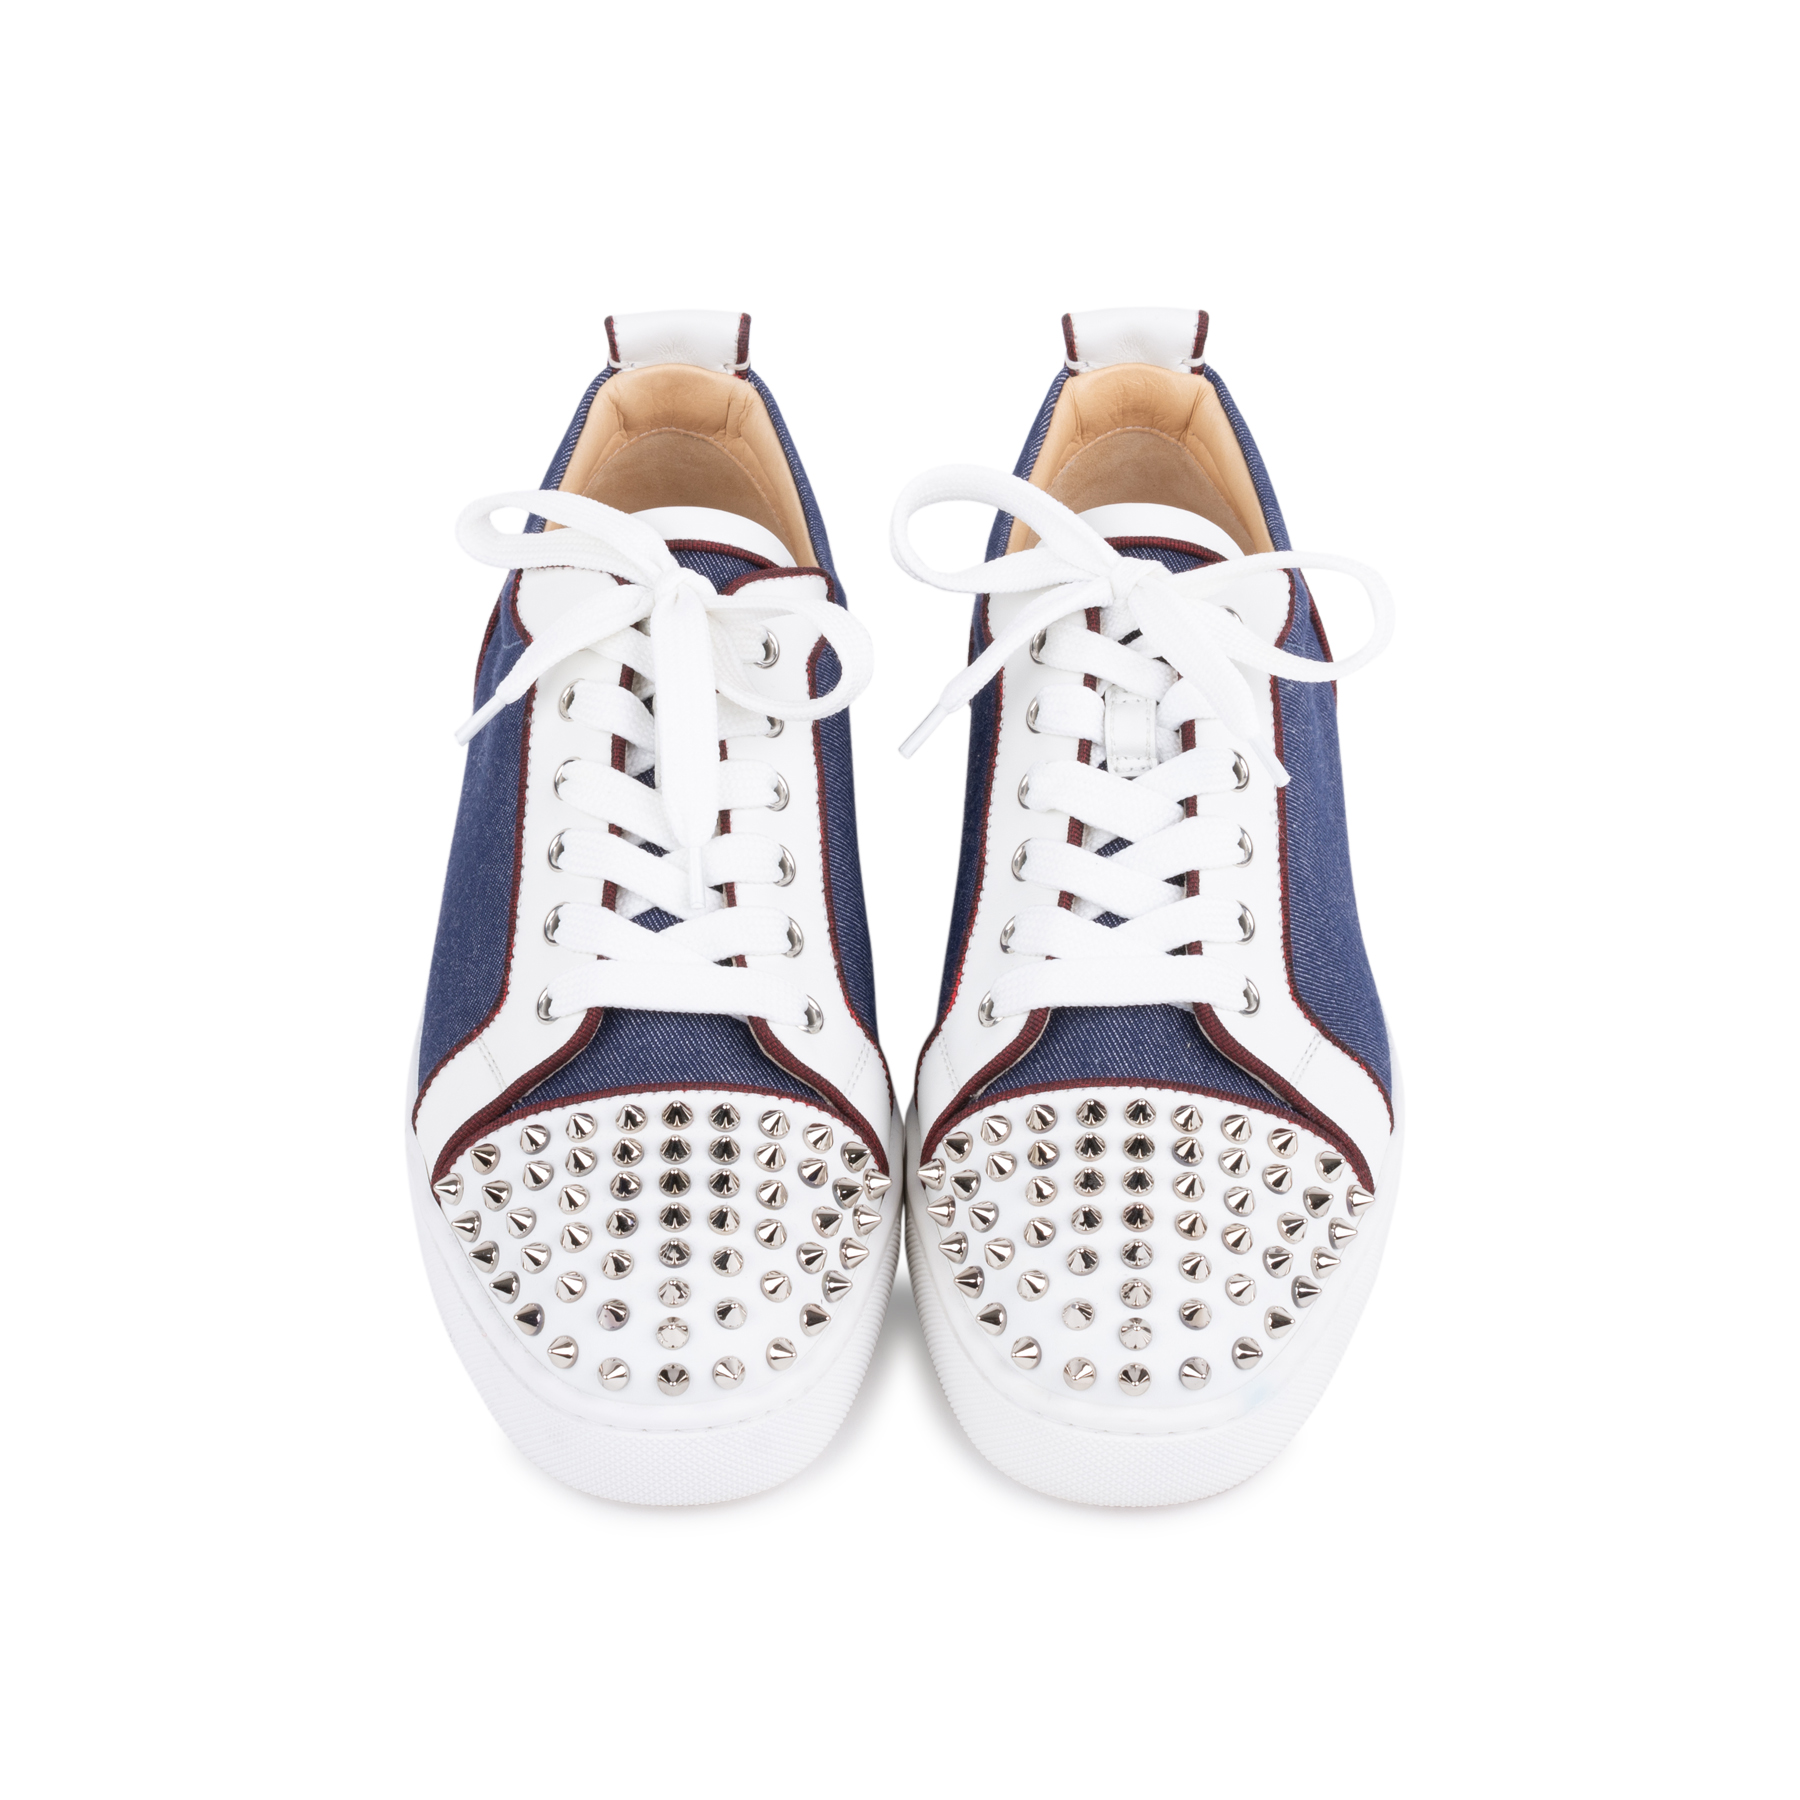 87fee11235e Authentic Second Hand Christian Louboutin Louis Junior Spiked Denim and  Leather Sneakers (PSS-601-00001)